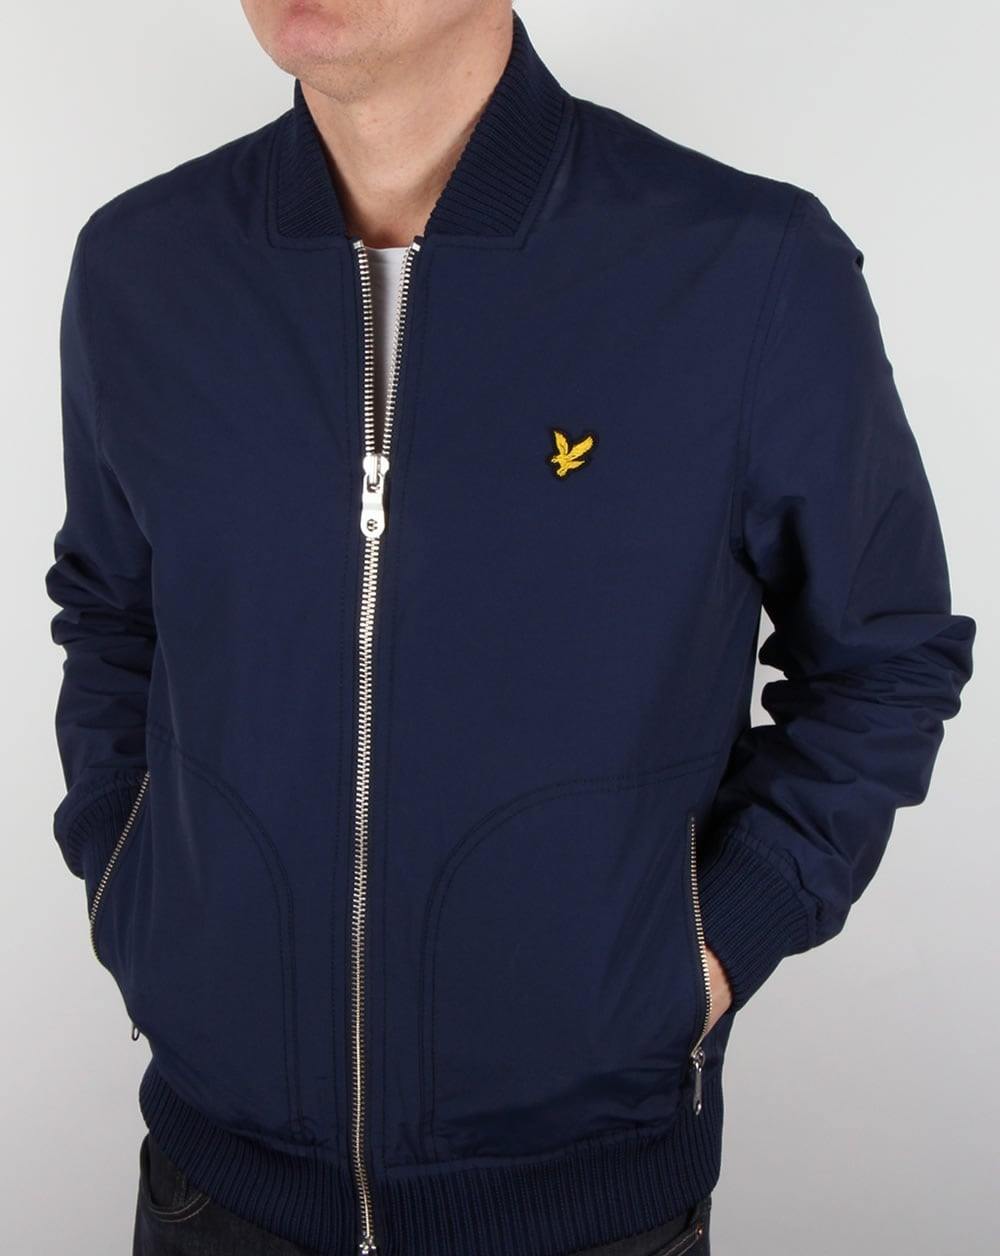 lyle and scott nylon bomber jacket navy lightweight coat mens. Black Bedroom Furniture Sets. Home Design Ideas